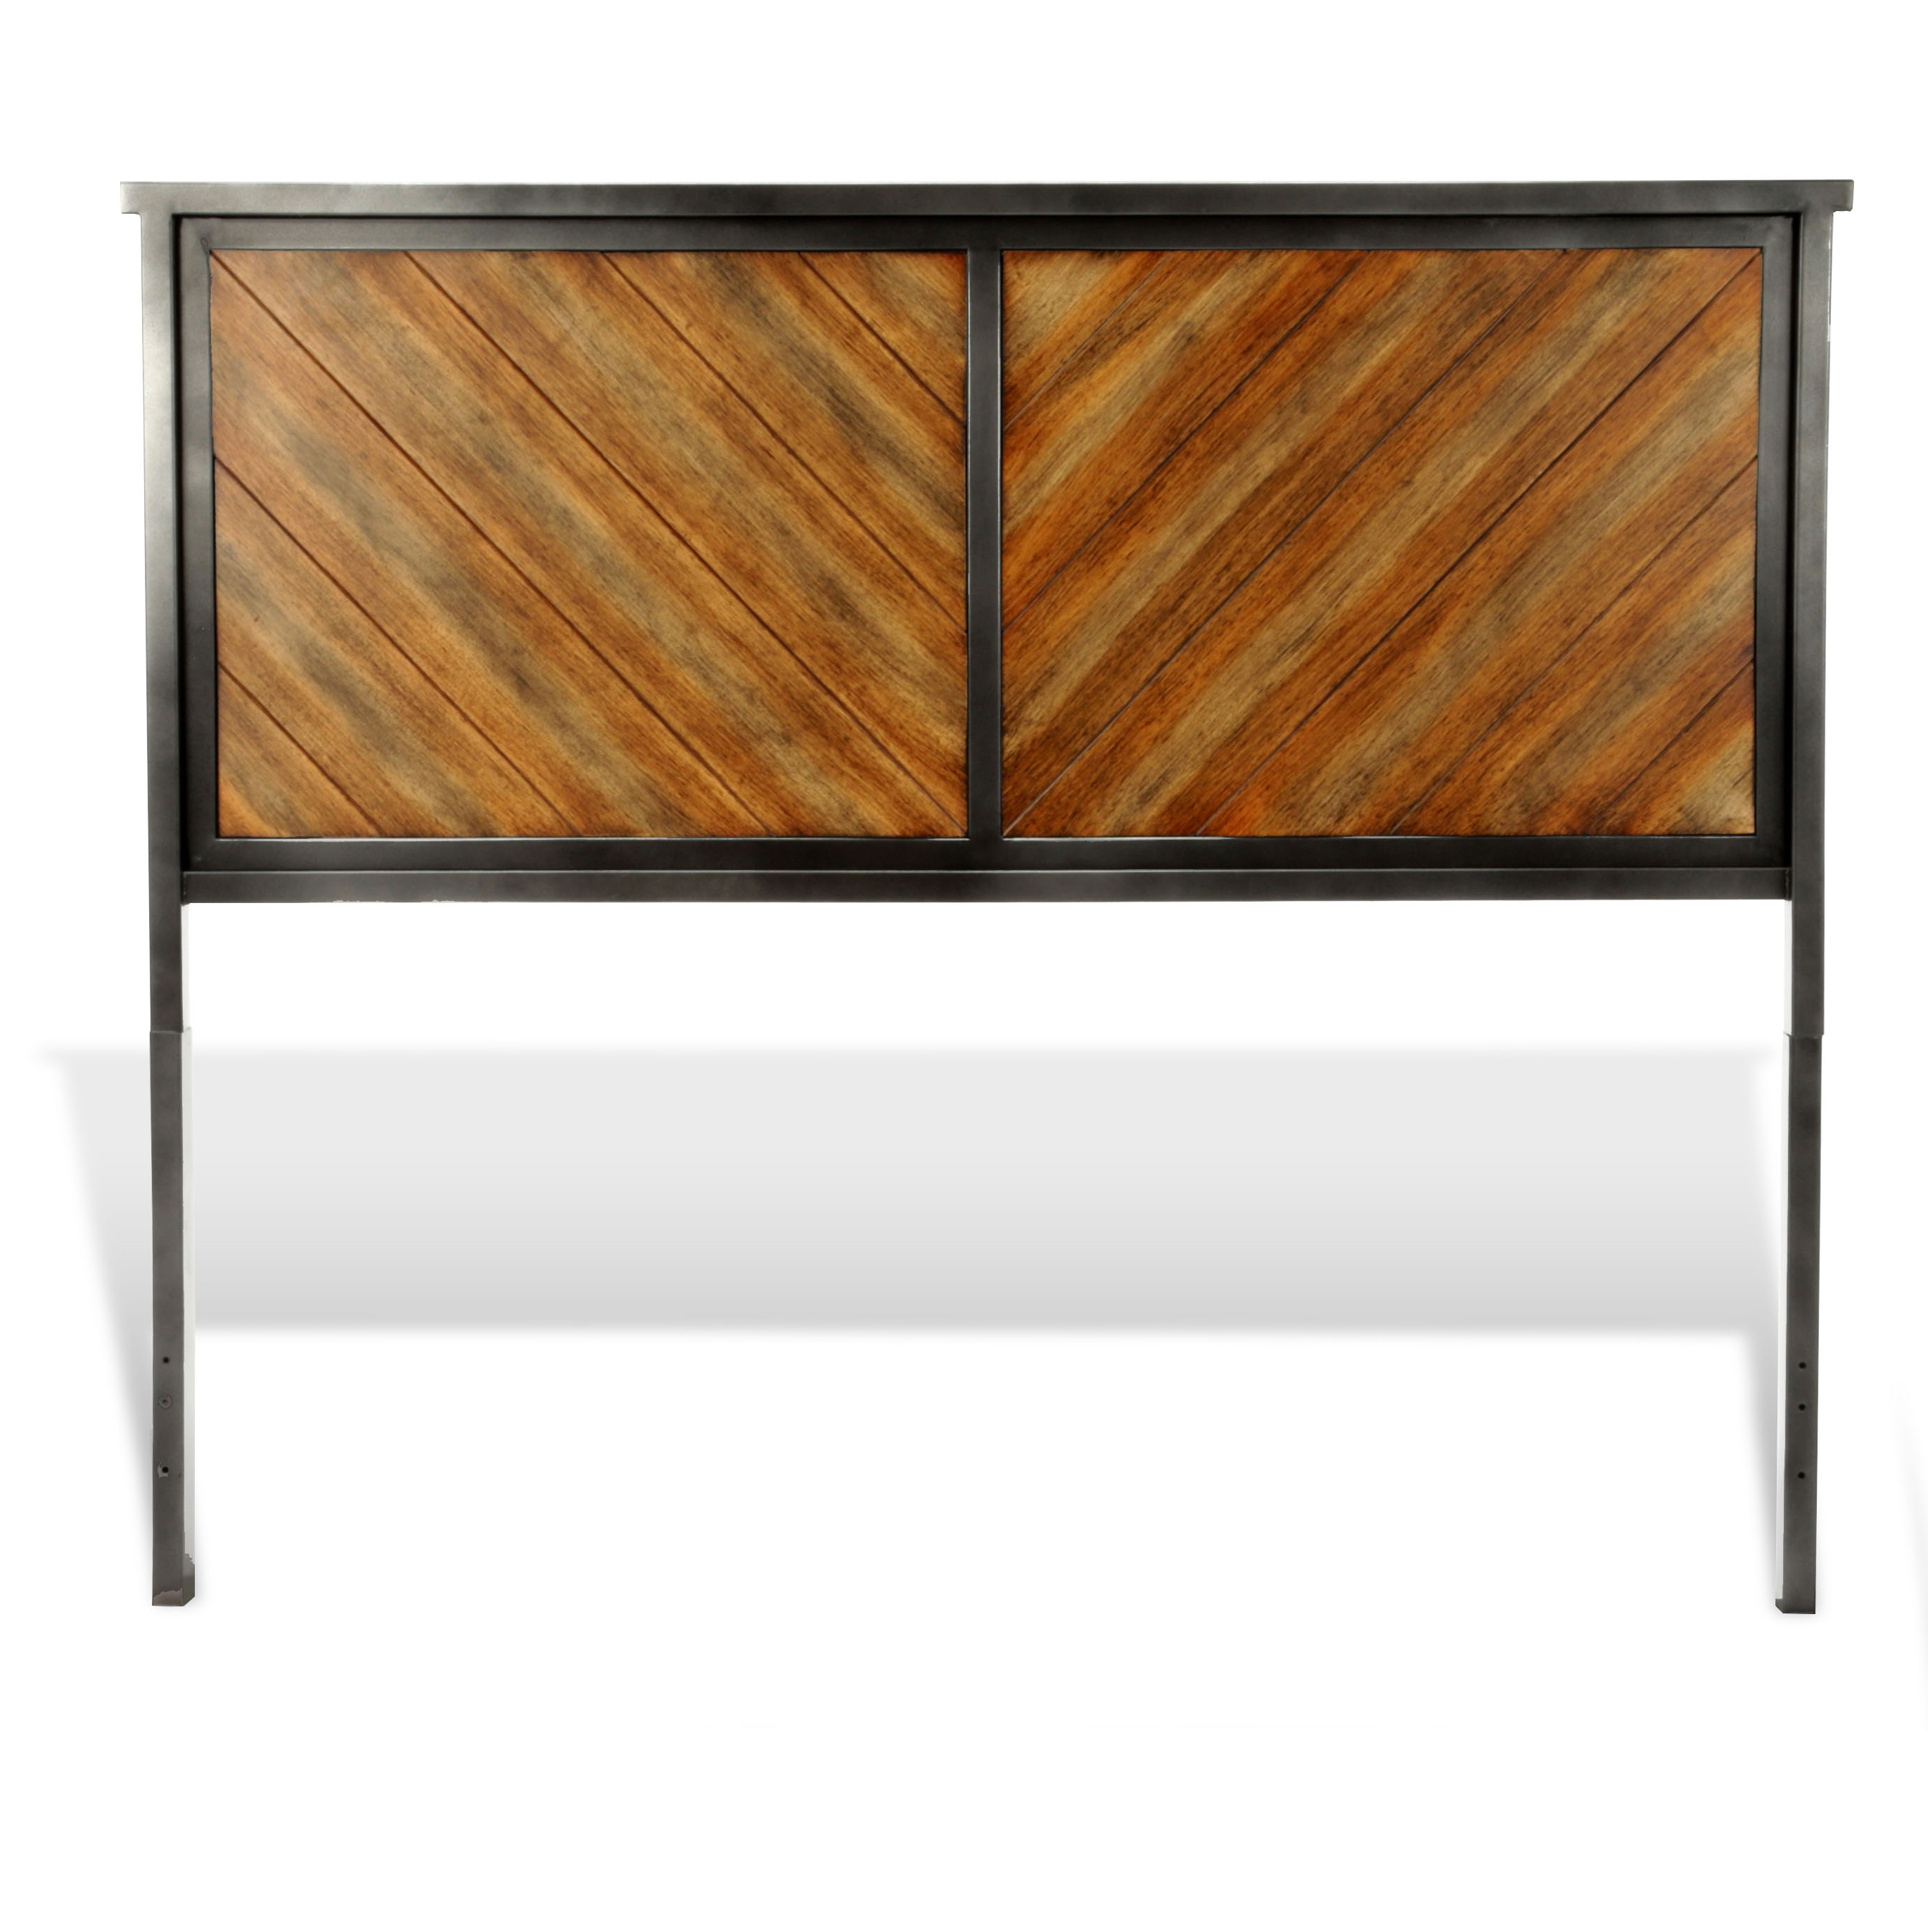 Most Recent Reclaimed Sideboards With Metal Panel Pertaining To B12444fashion Bed Group Braden Metal Headboard Panel With Reclaimed (View 6 of 20)